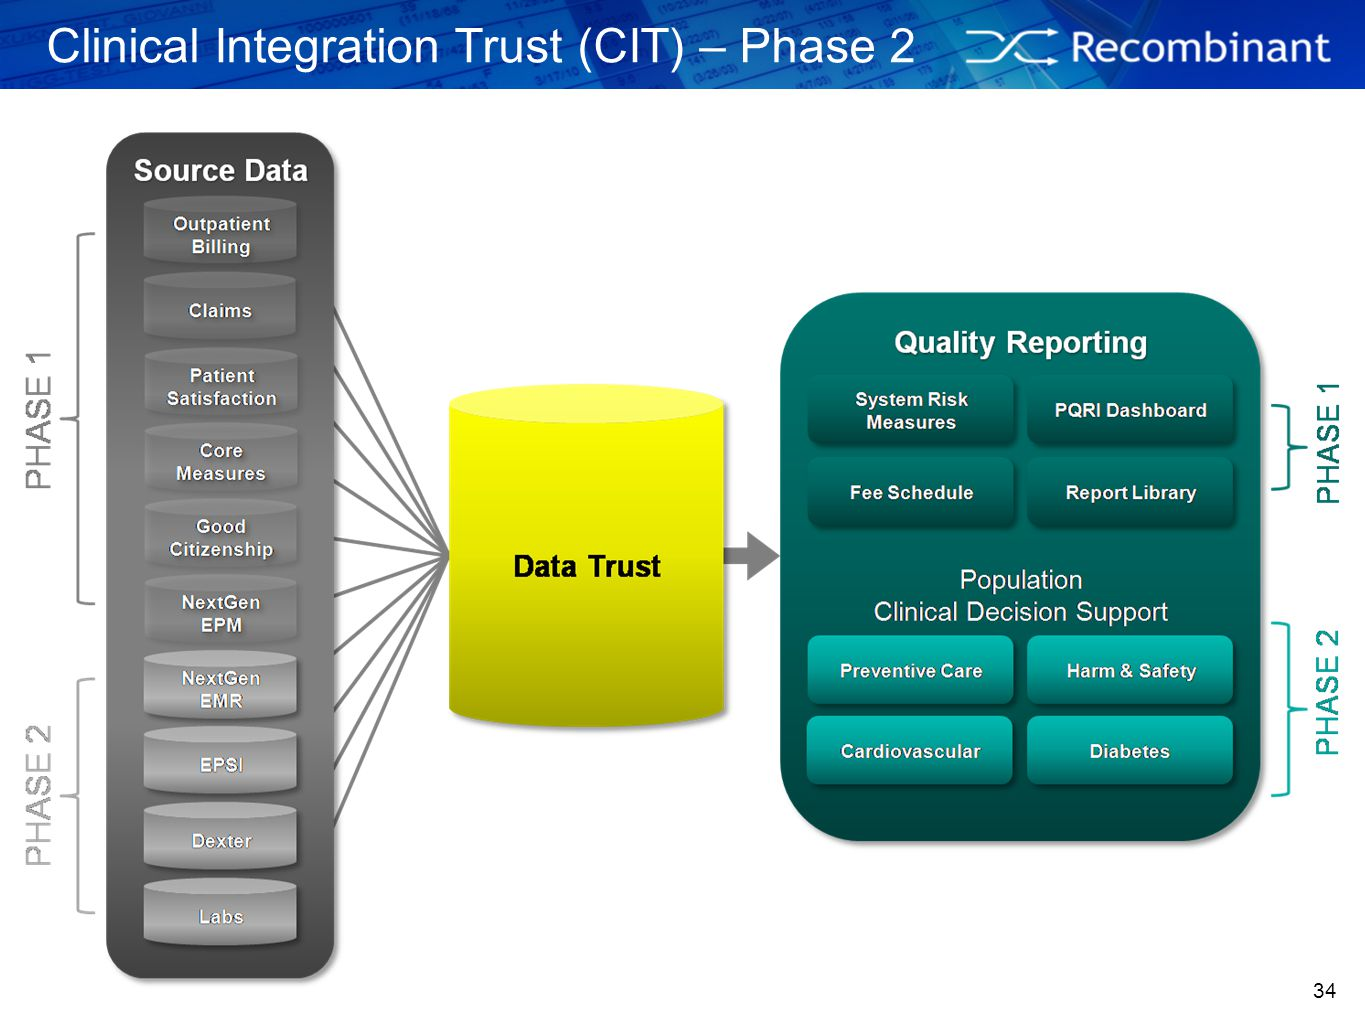 Clinical Integration Trust (CIT) – Phase 2